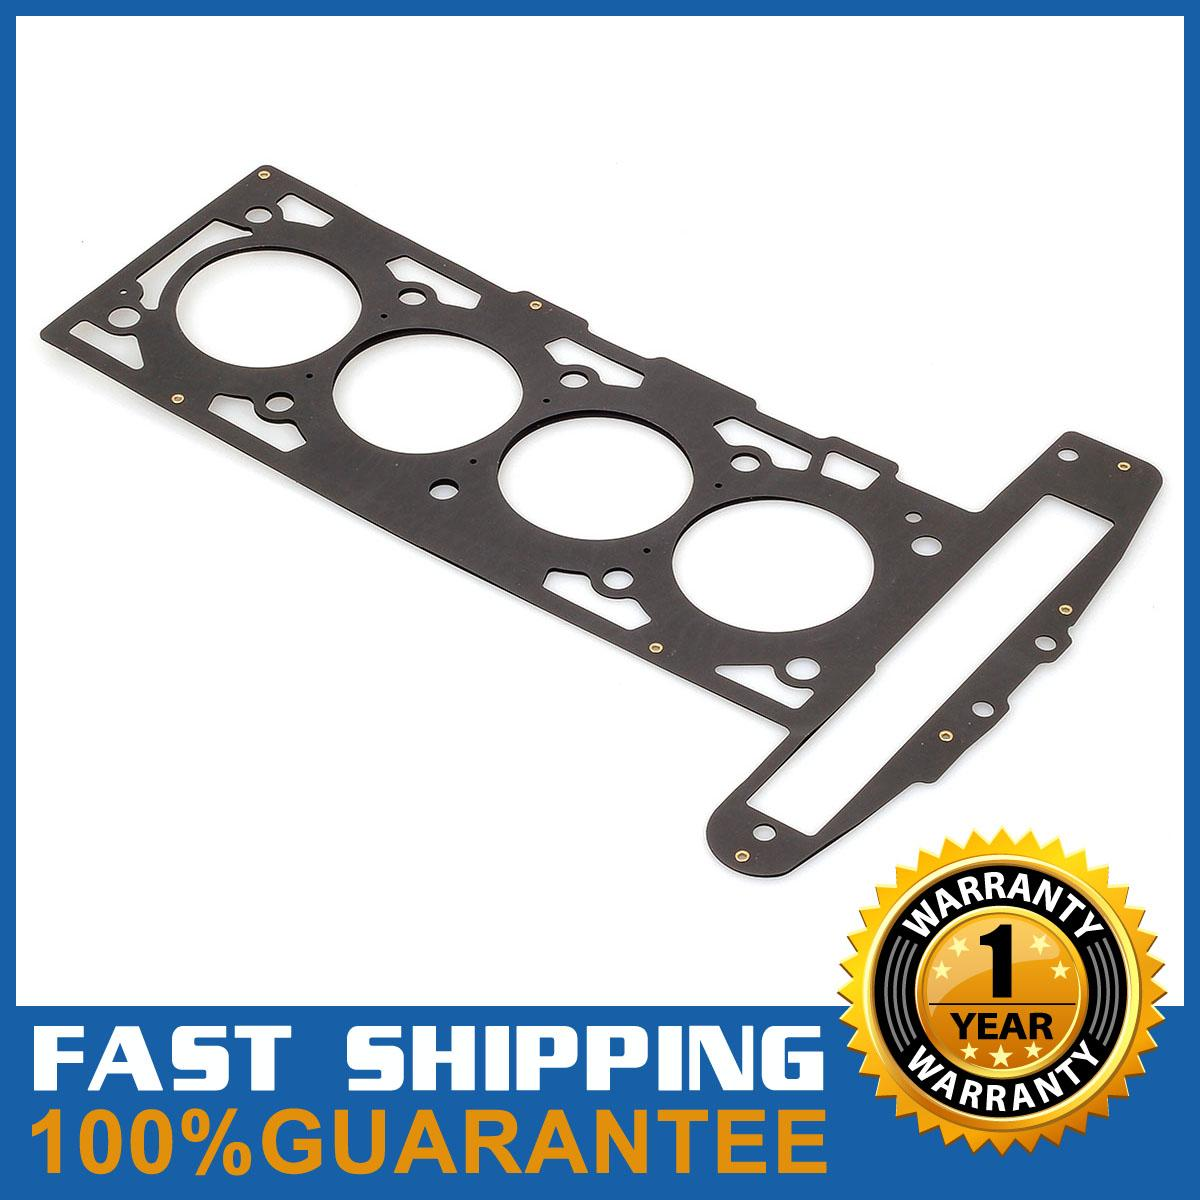 2010 Chevy Cobalt Sedan Engine Head Gasket Diagram FULL HD ...